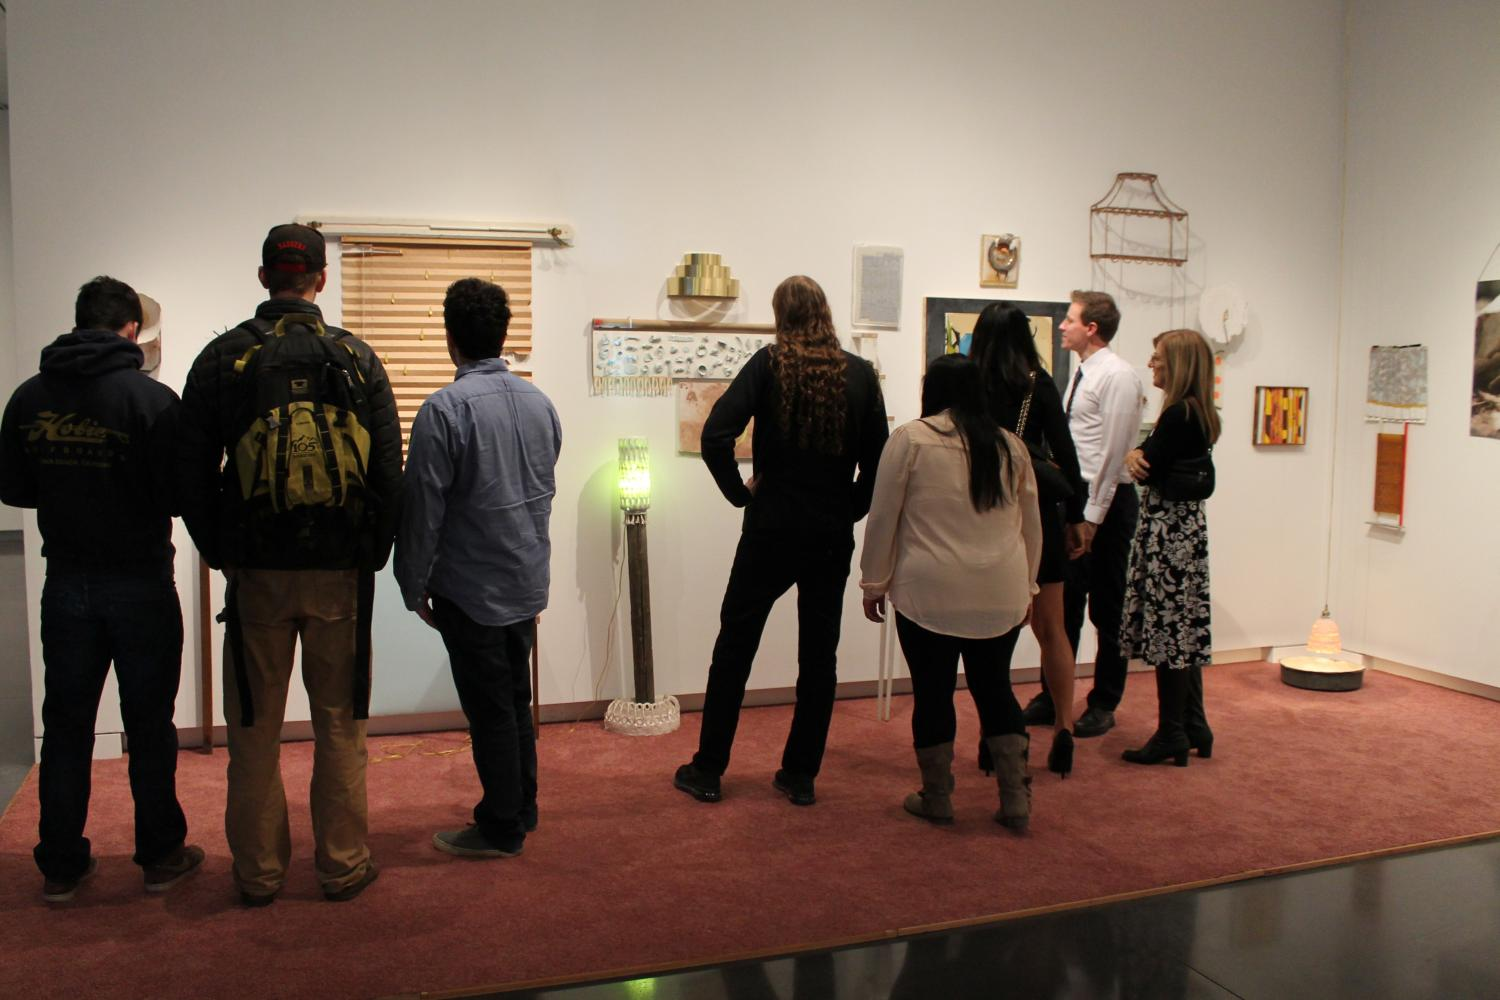 a group of people viewing objects on the wall of the gallery.